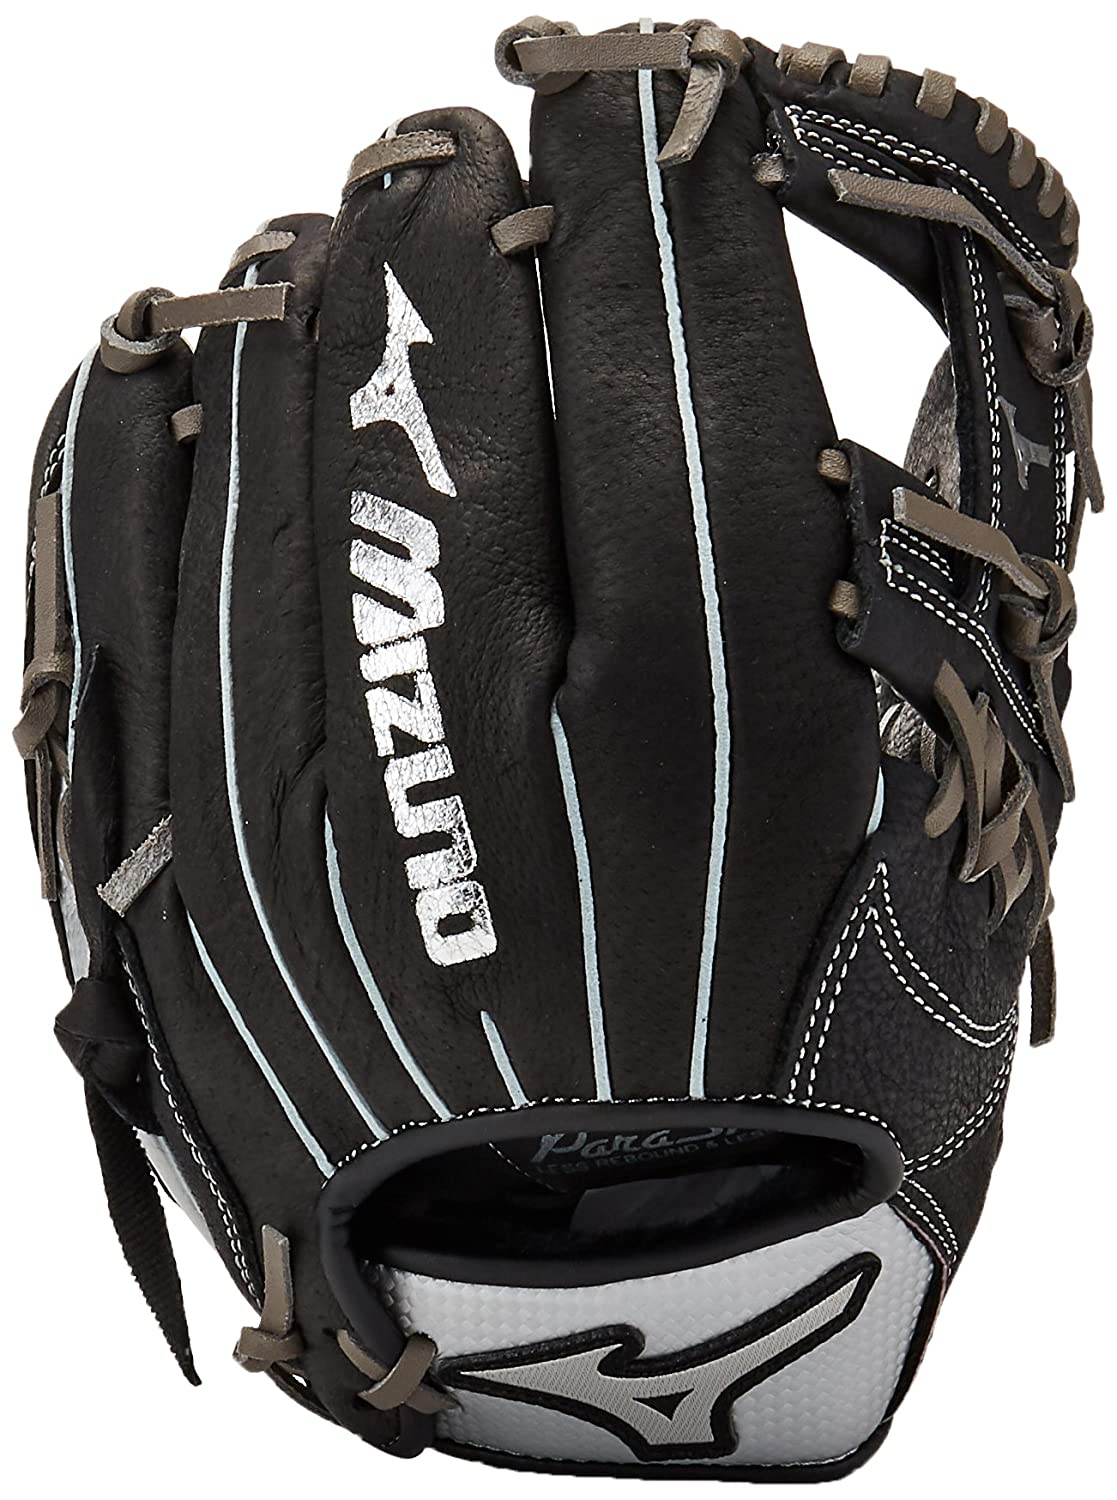 Mizuno Premier Baseball Glove 312431.FR90.13.1200-Parent